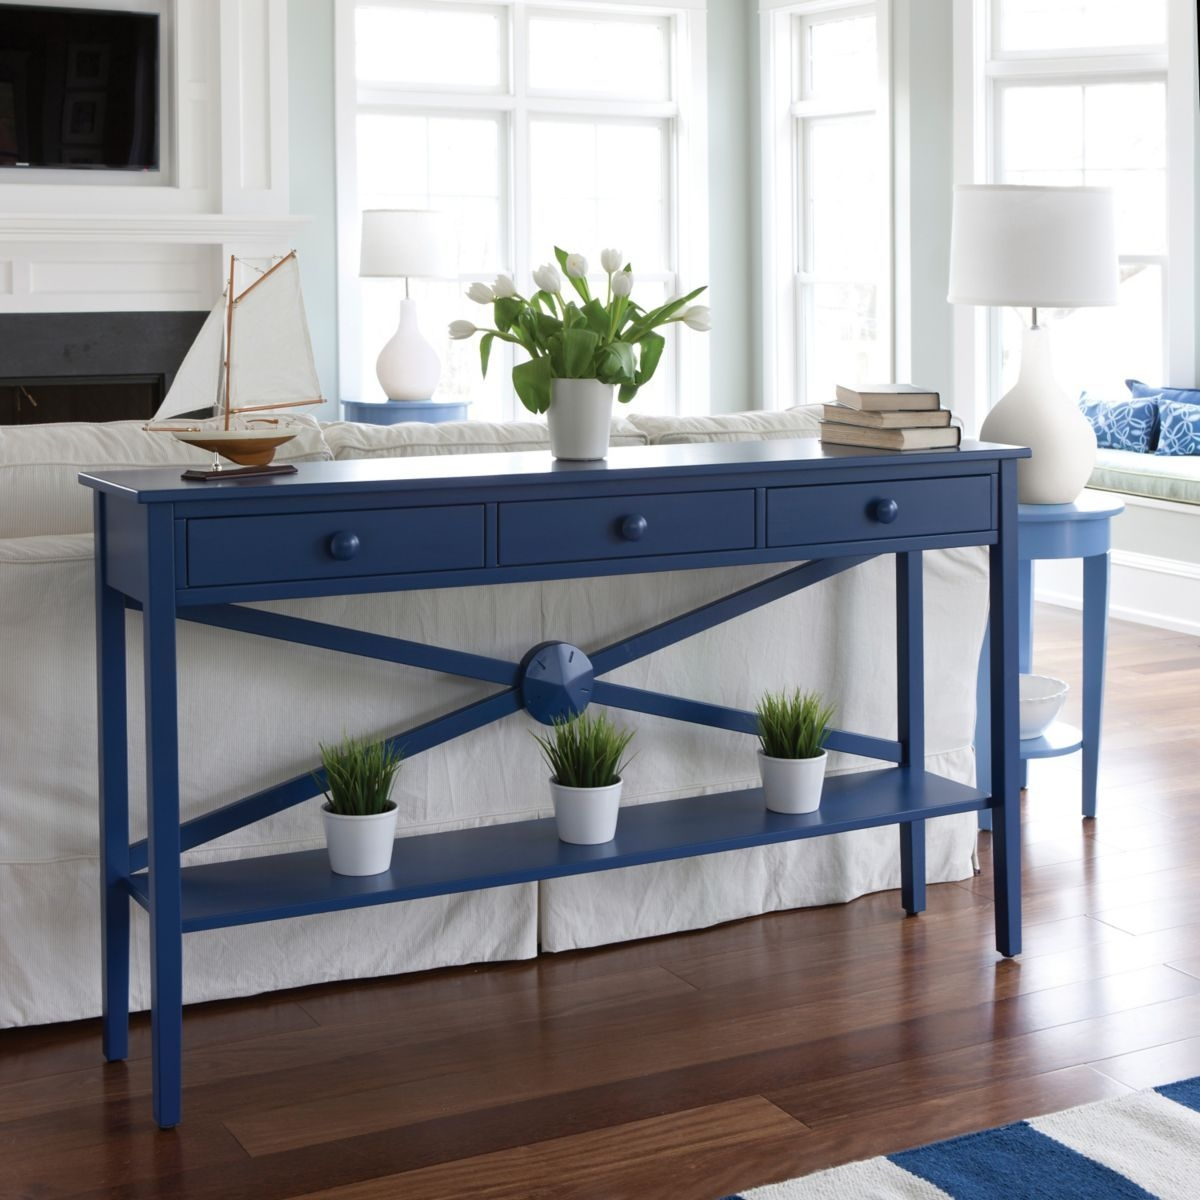 Beau Cottage Console Table 1